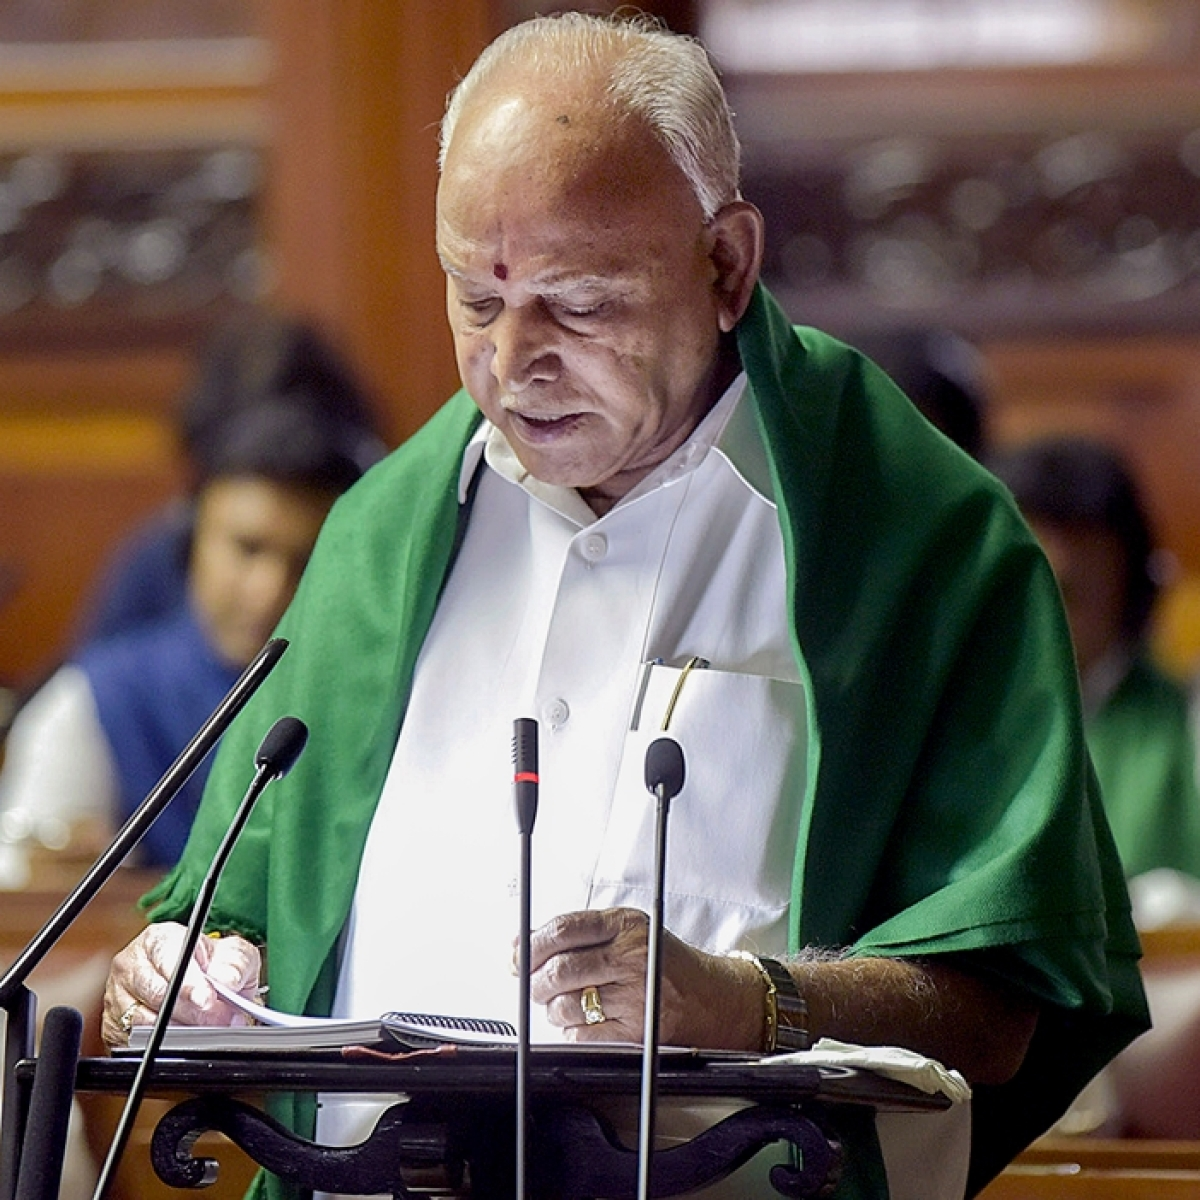 Karnataka CM BS Yediyurappa warns of strict action against those 'communalising' coronavirus